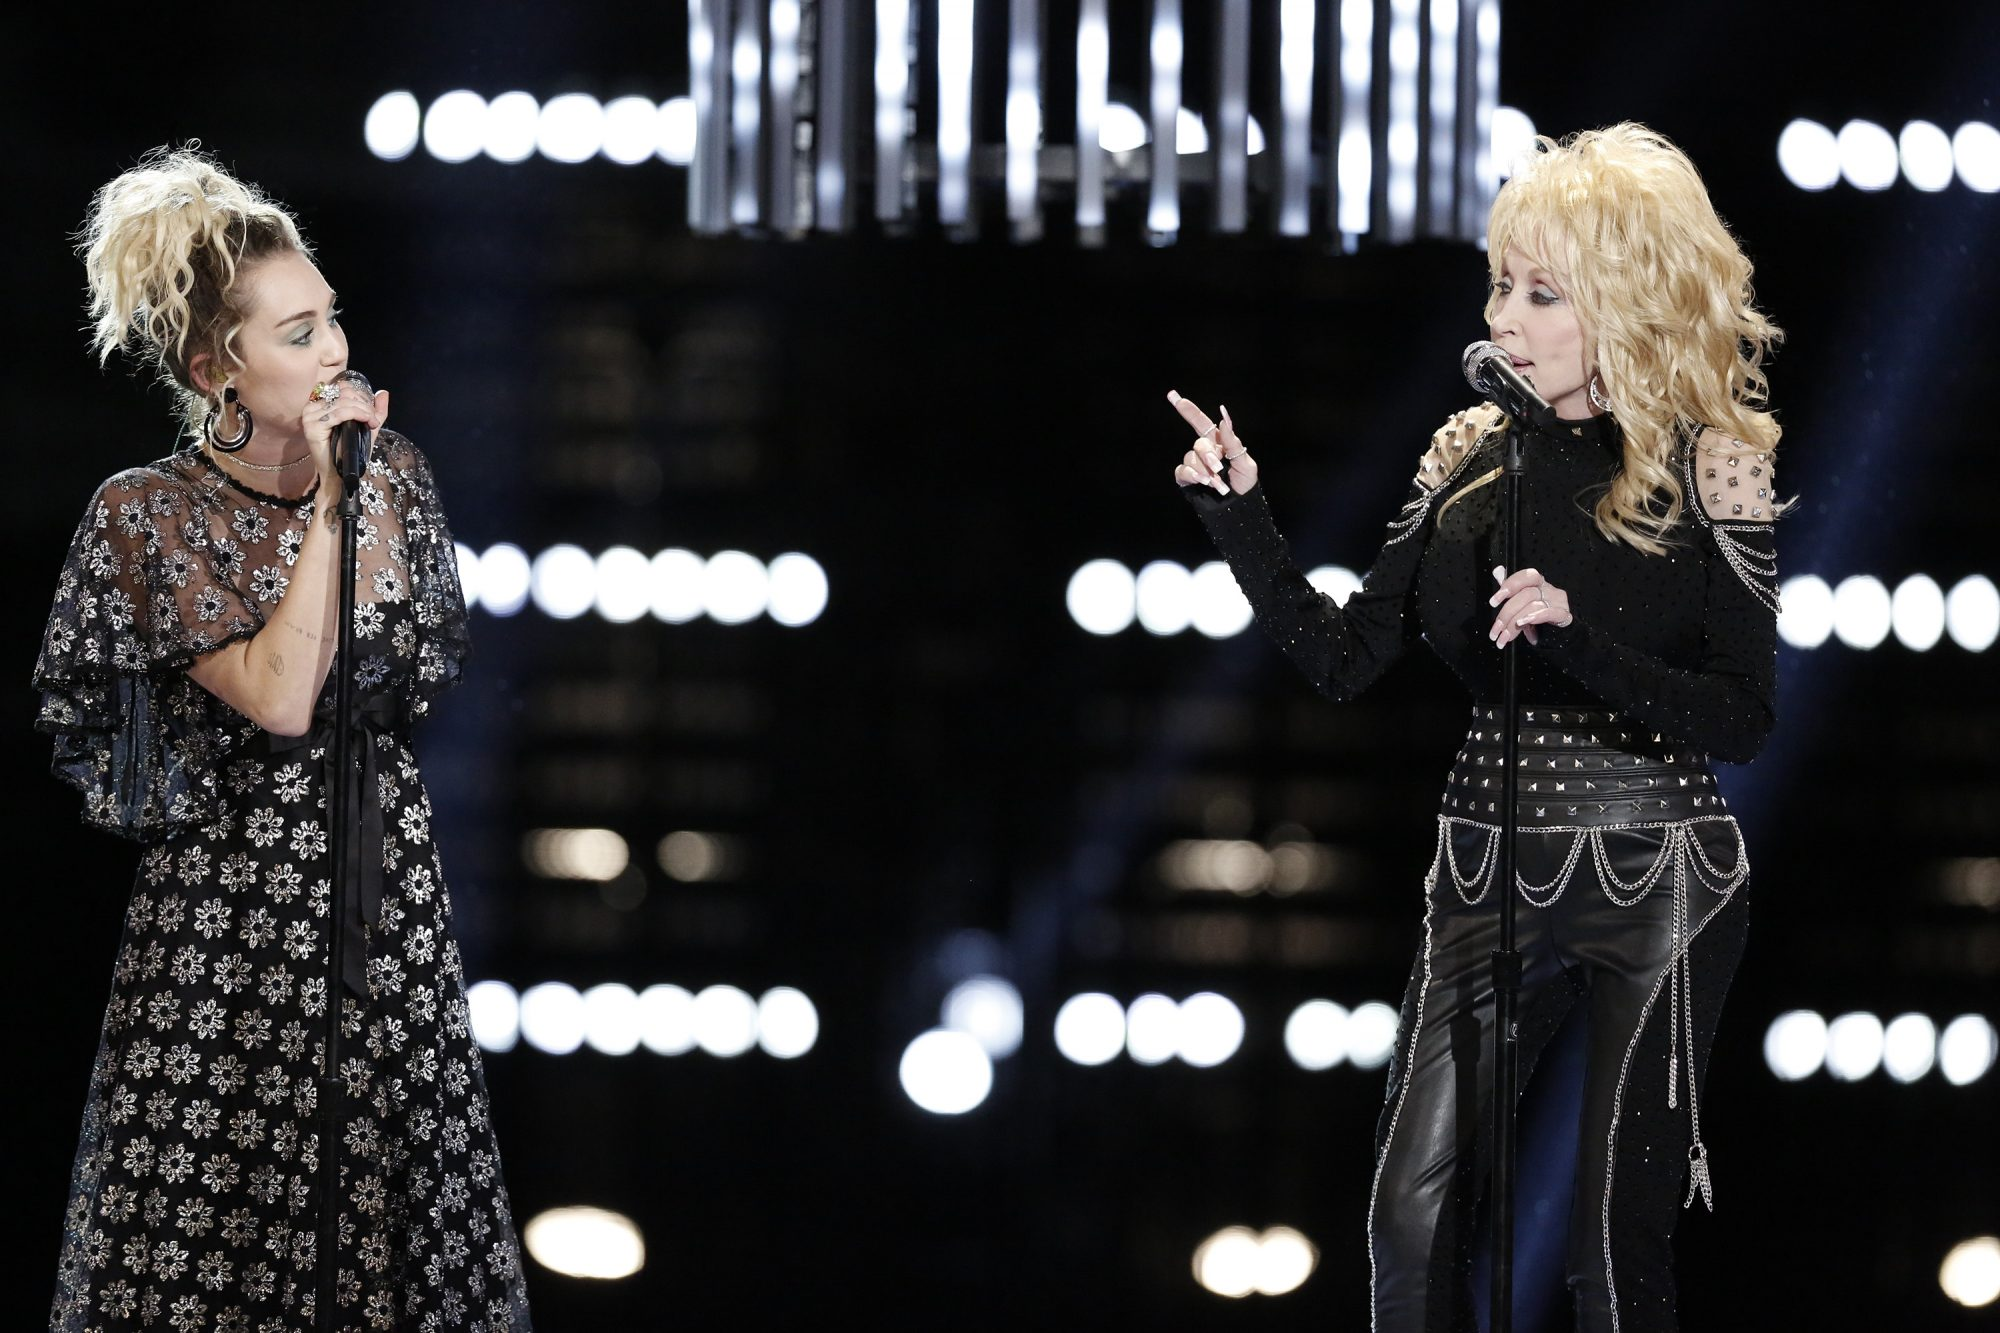 Dolly Parton and Miley Cyrus singing  Jolene  on The Voice